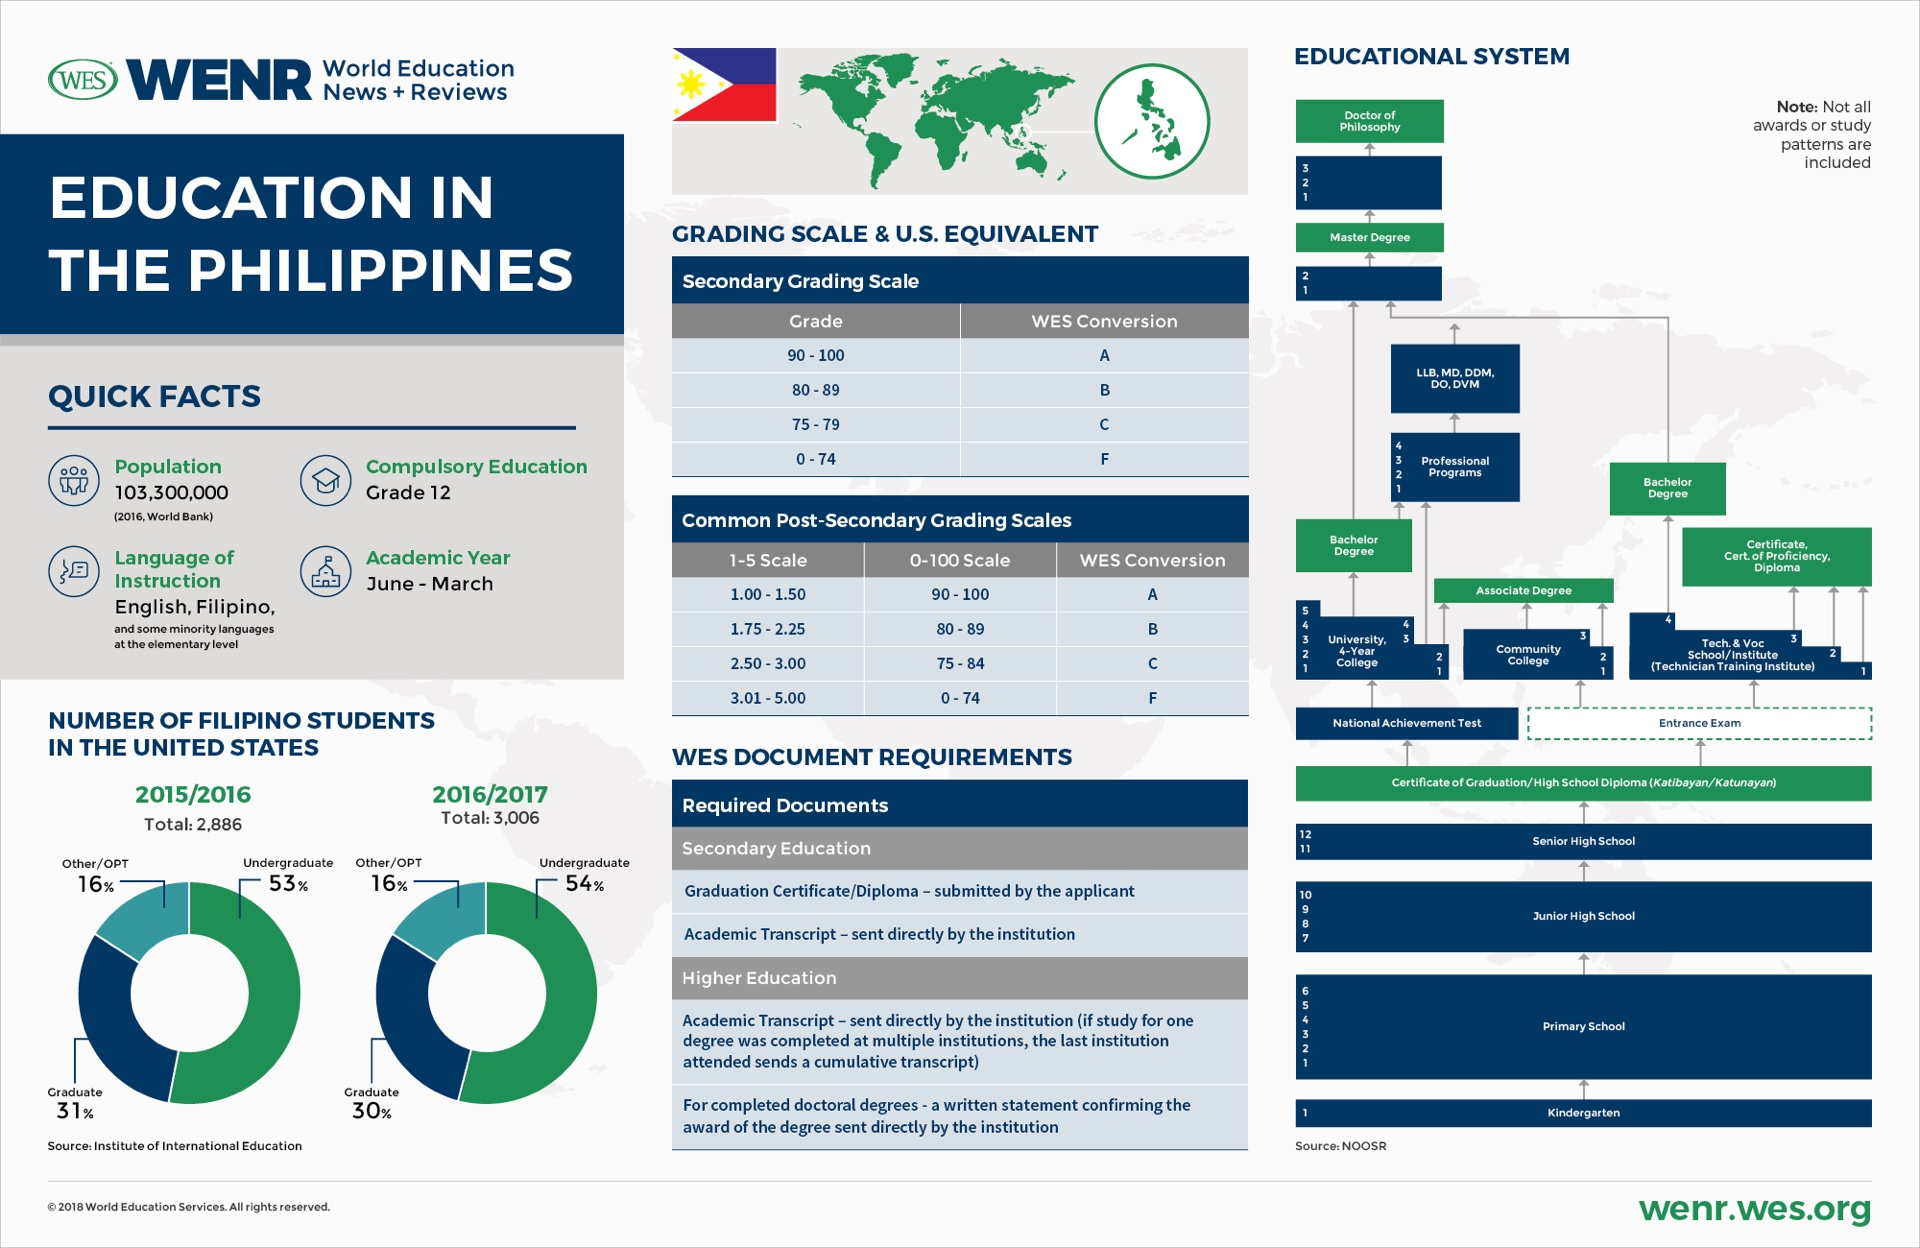 education-in-the-philippines